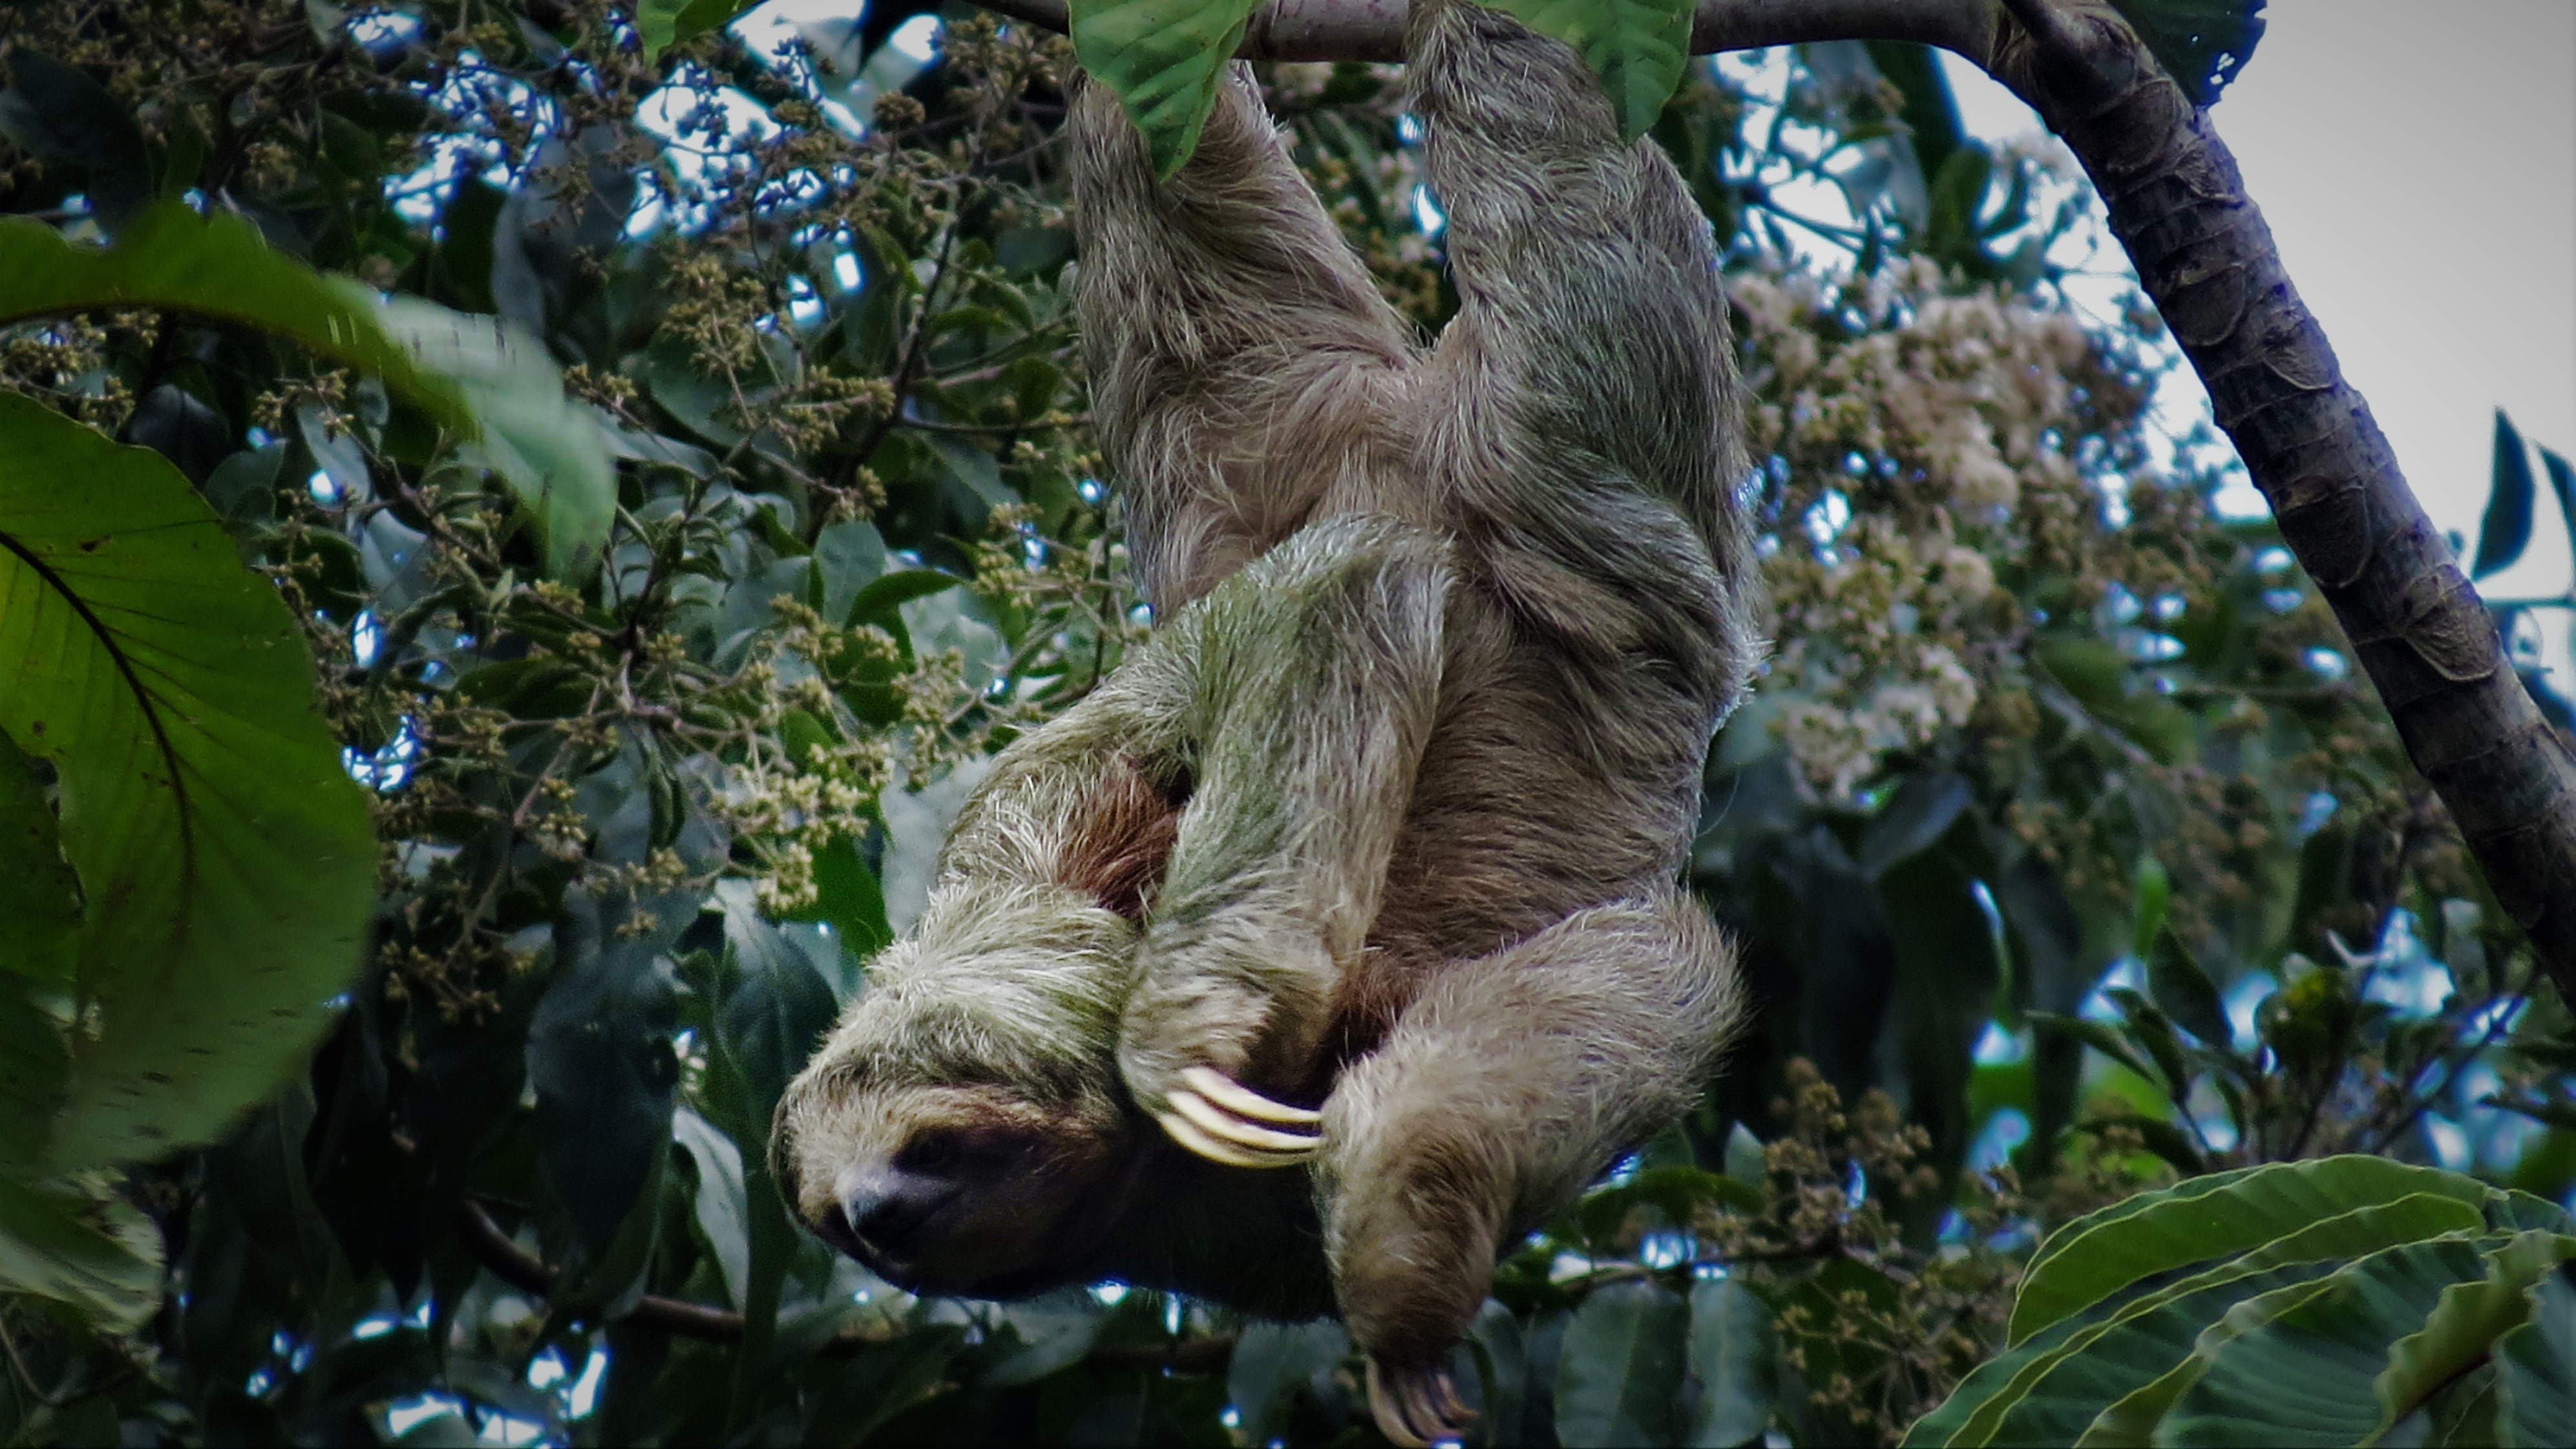 Can you recommend the best place to see sloths in La Fortuna?